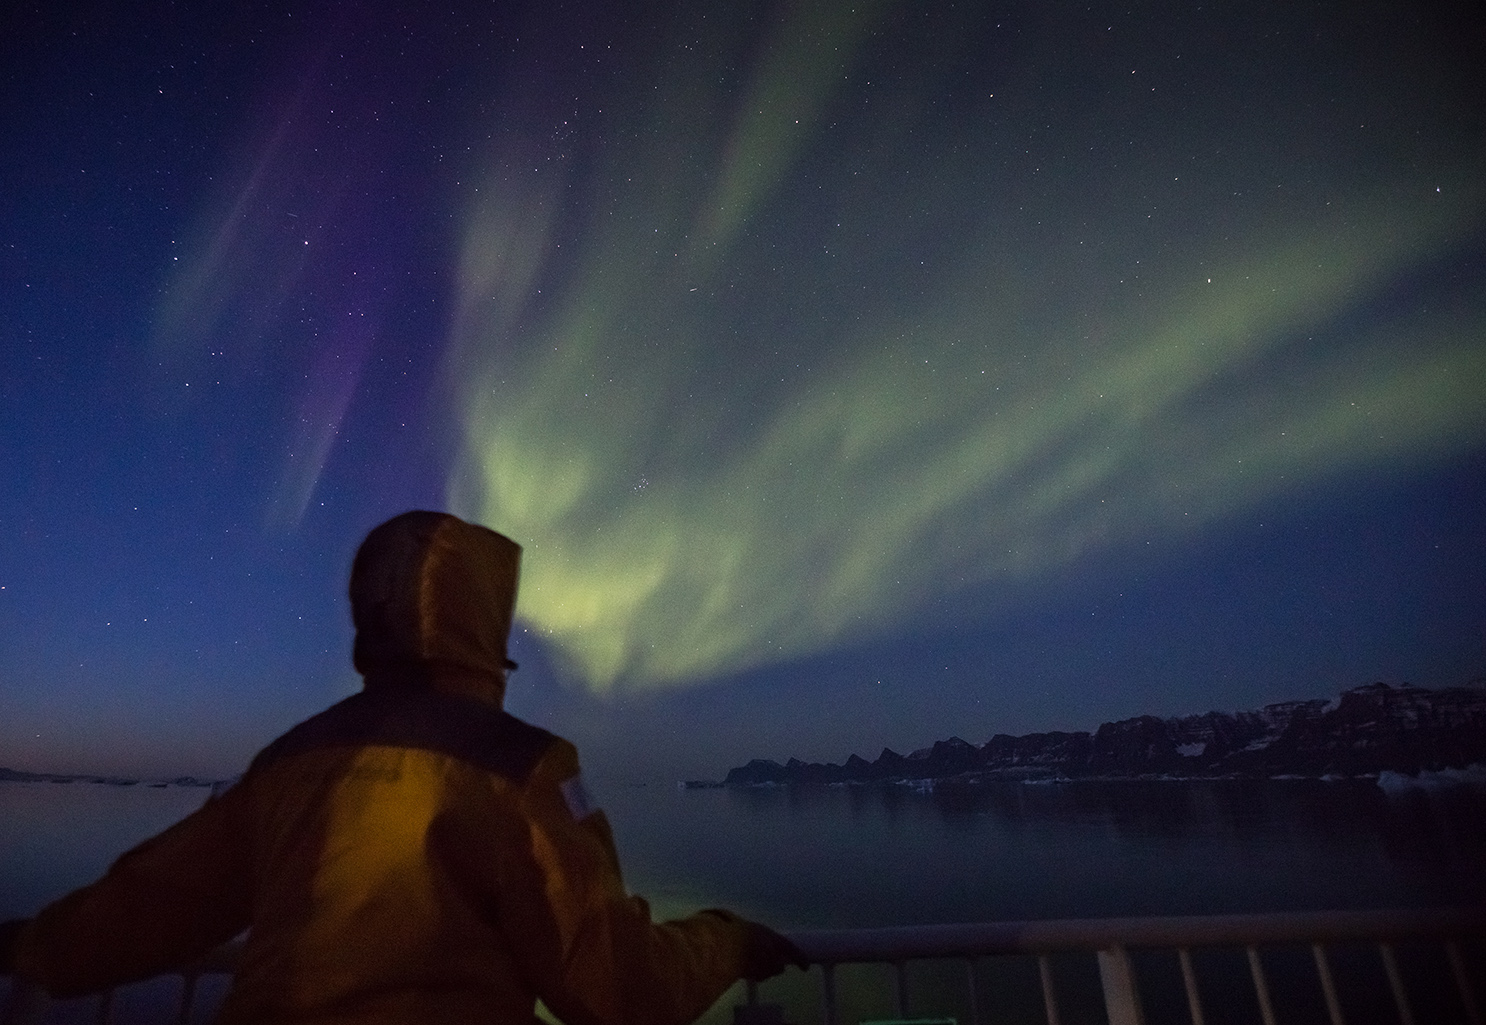 A Quark Expeditions guests witnesses the Aurora borealis from the deck of a polar ship